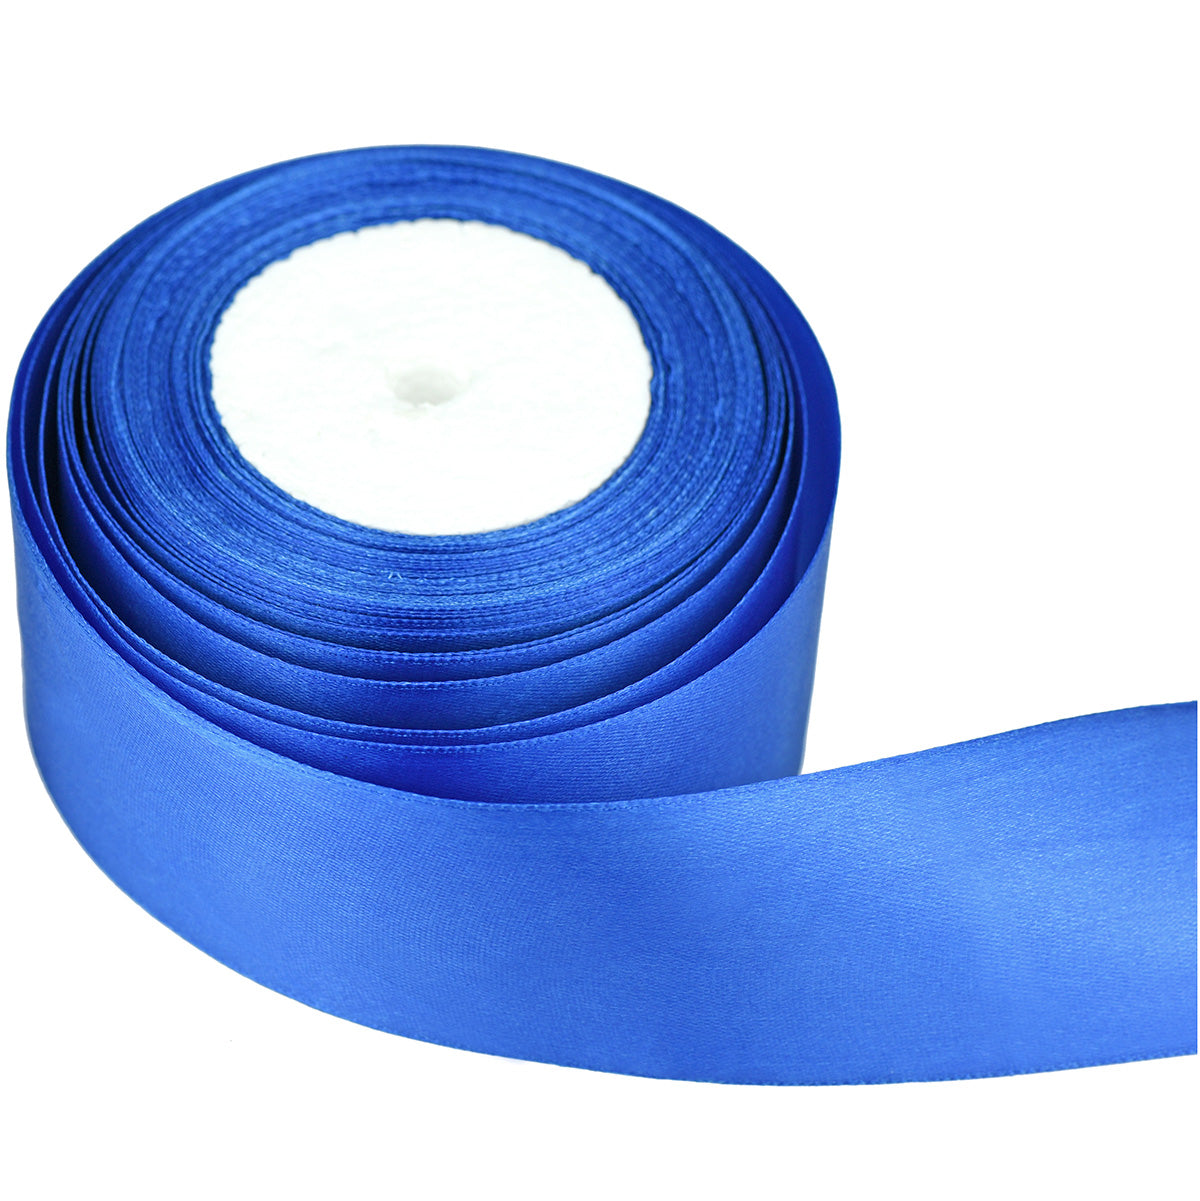 40mm Royal Blue Single Sided Satin Ribbon